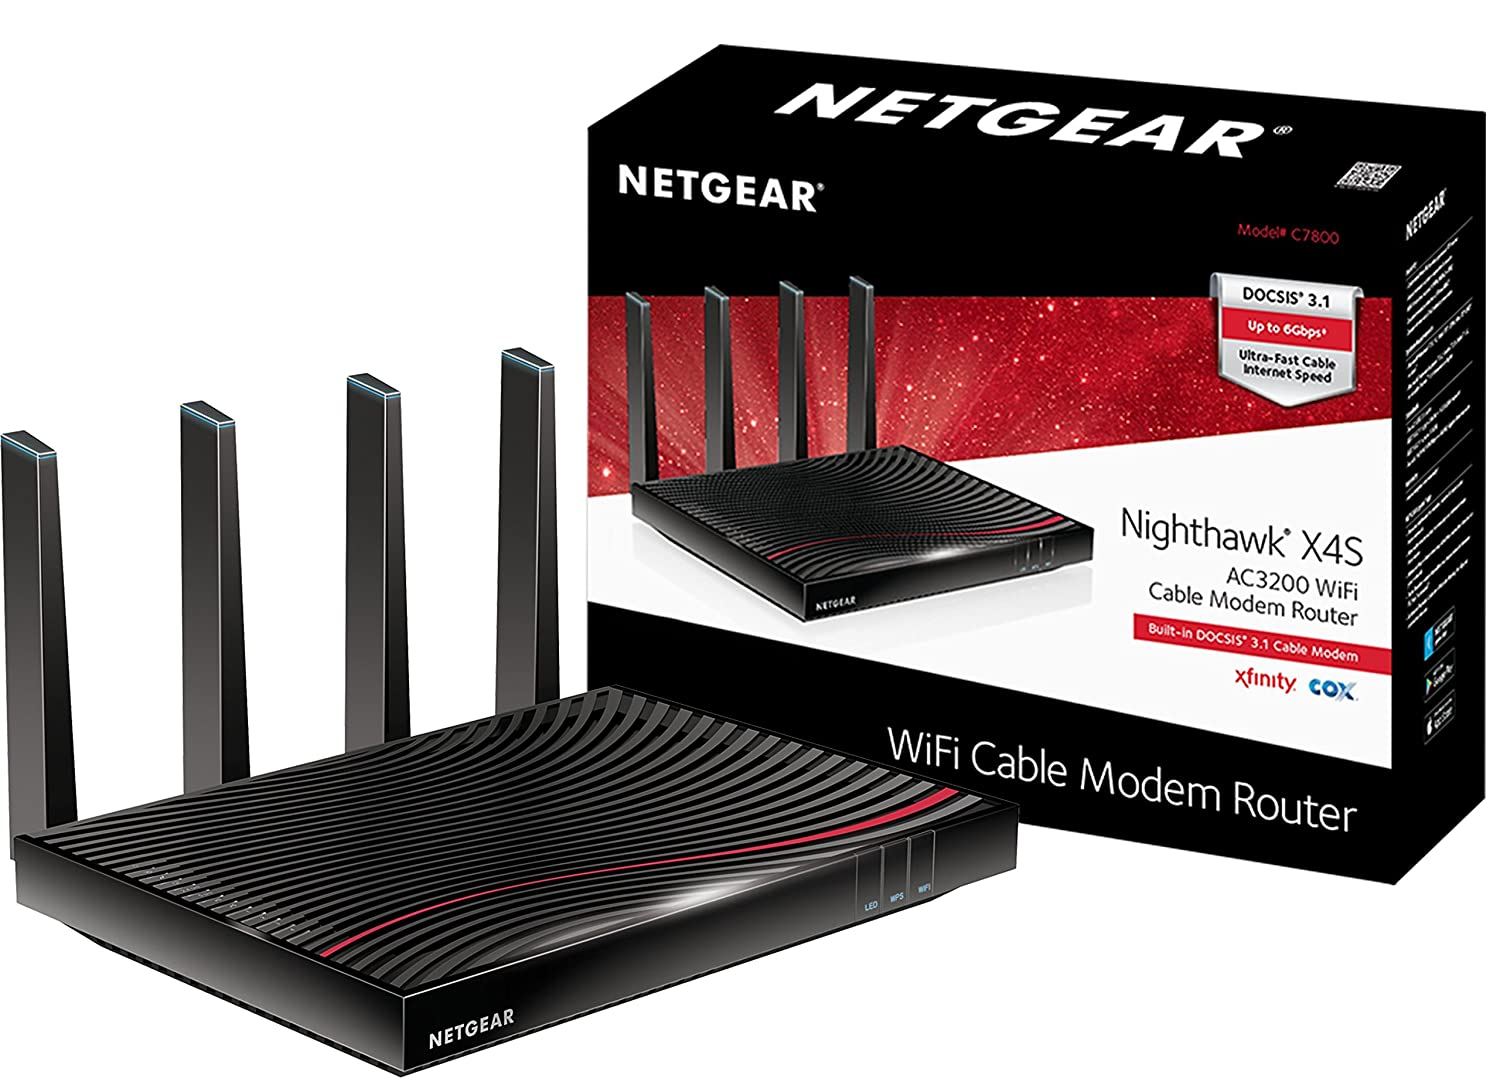 Netgear Nighthawk X4s Docsis 31 Ultra High Speed Wifi Xfinity Cable Modem Wiring Diagram Router Combo Compatible With From Comcast Cox Gig